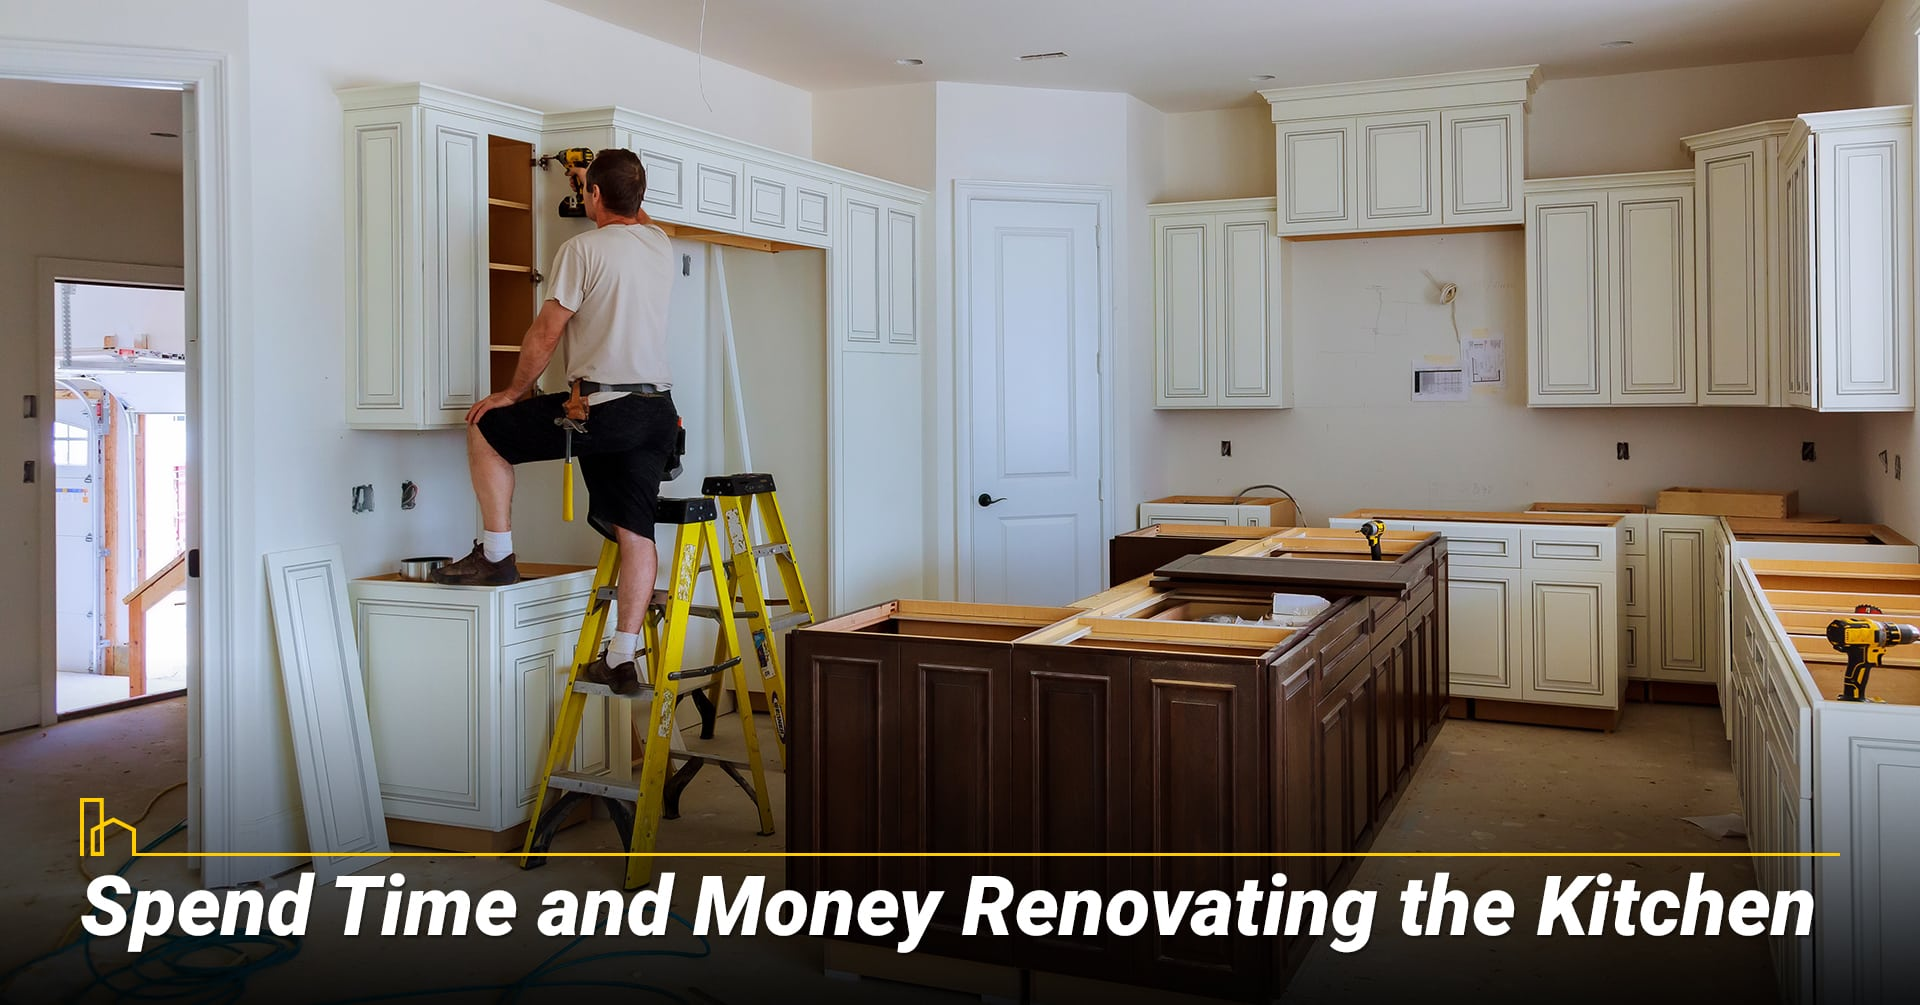 Spend Time and Money Renovating the Kitchen, upgrade your kitchen